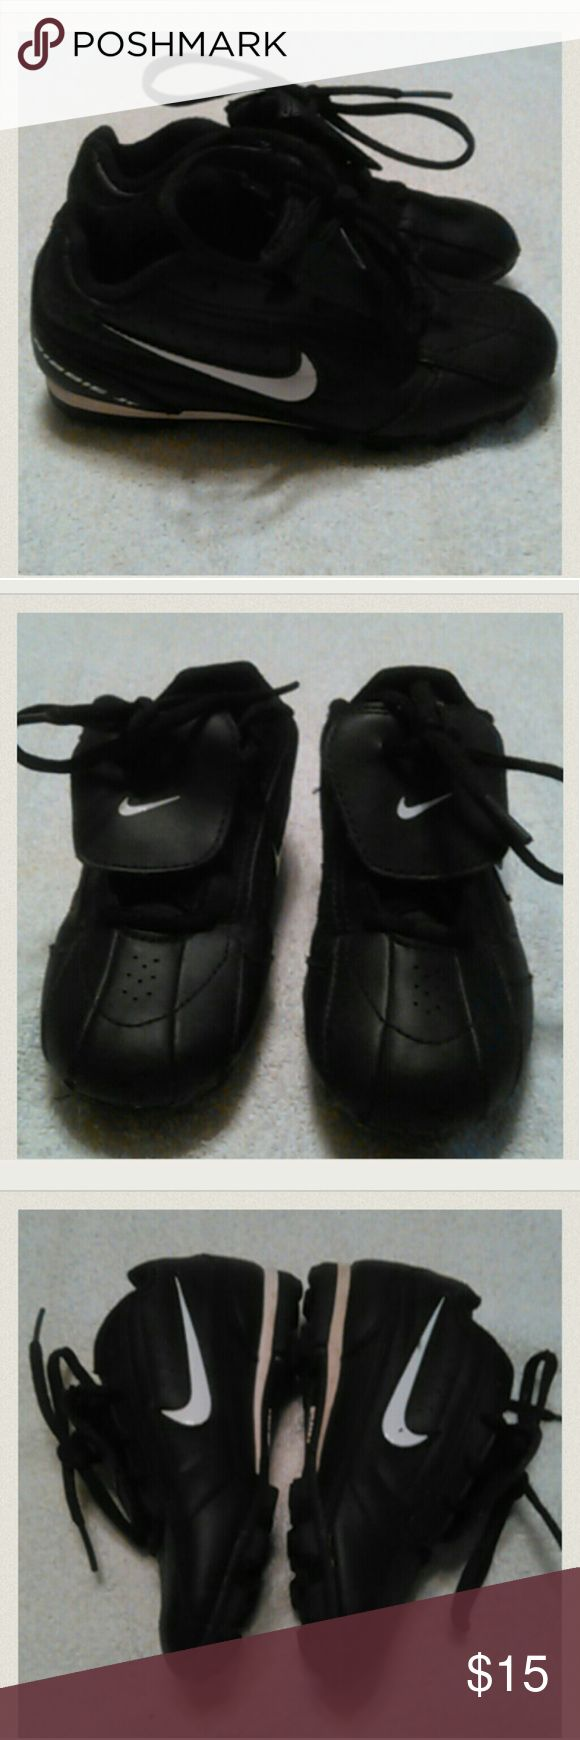 SIZE 11.5 NIKE SOCCER CLEATS GOOD CONDITION, TODDLER BLACK/WHITE, A HARDLY NOTICEABLE SCUFF ON TIP TOES OF SHOES Nike Shoes Sneakers